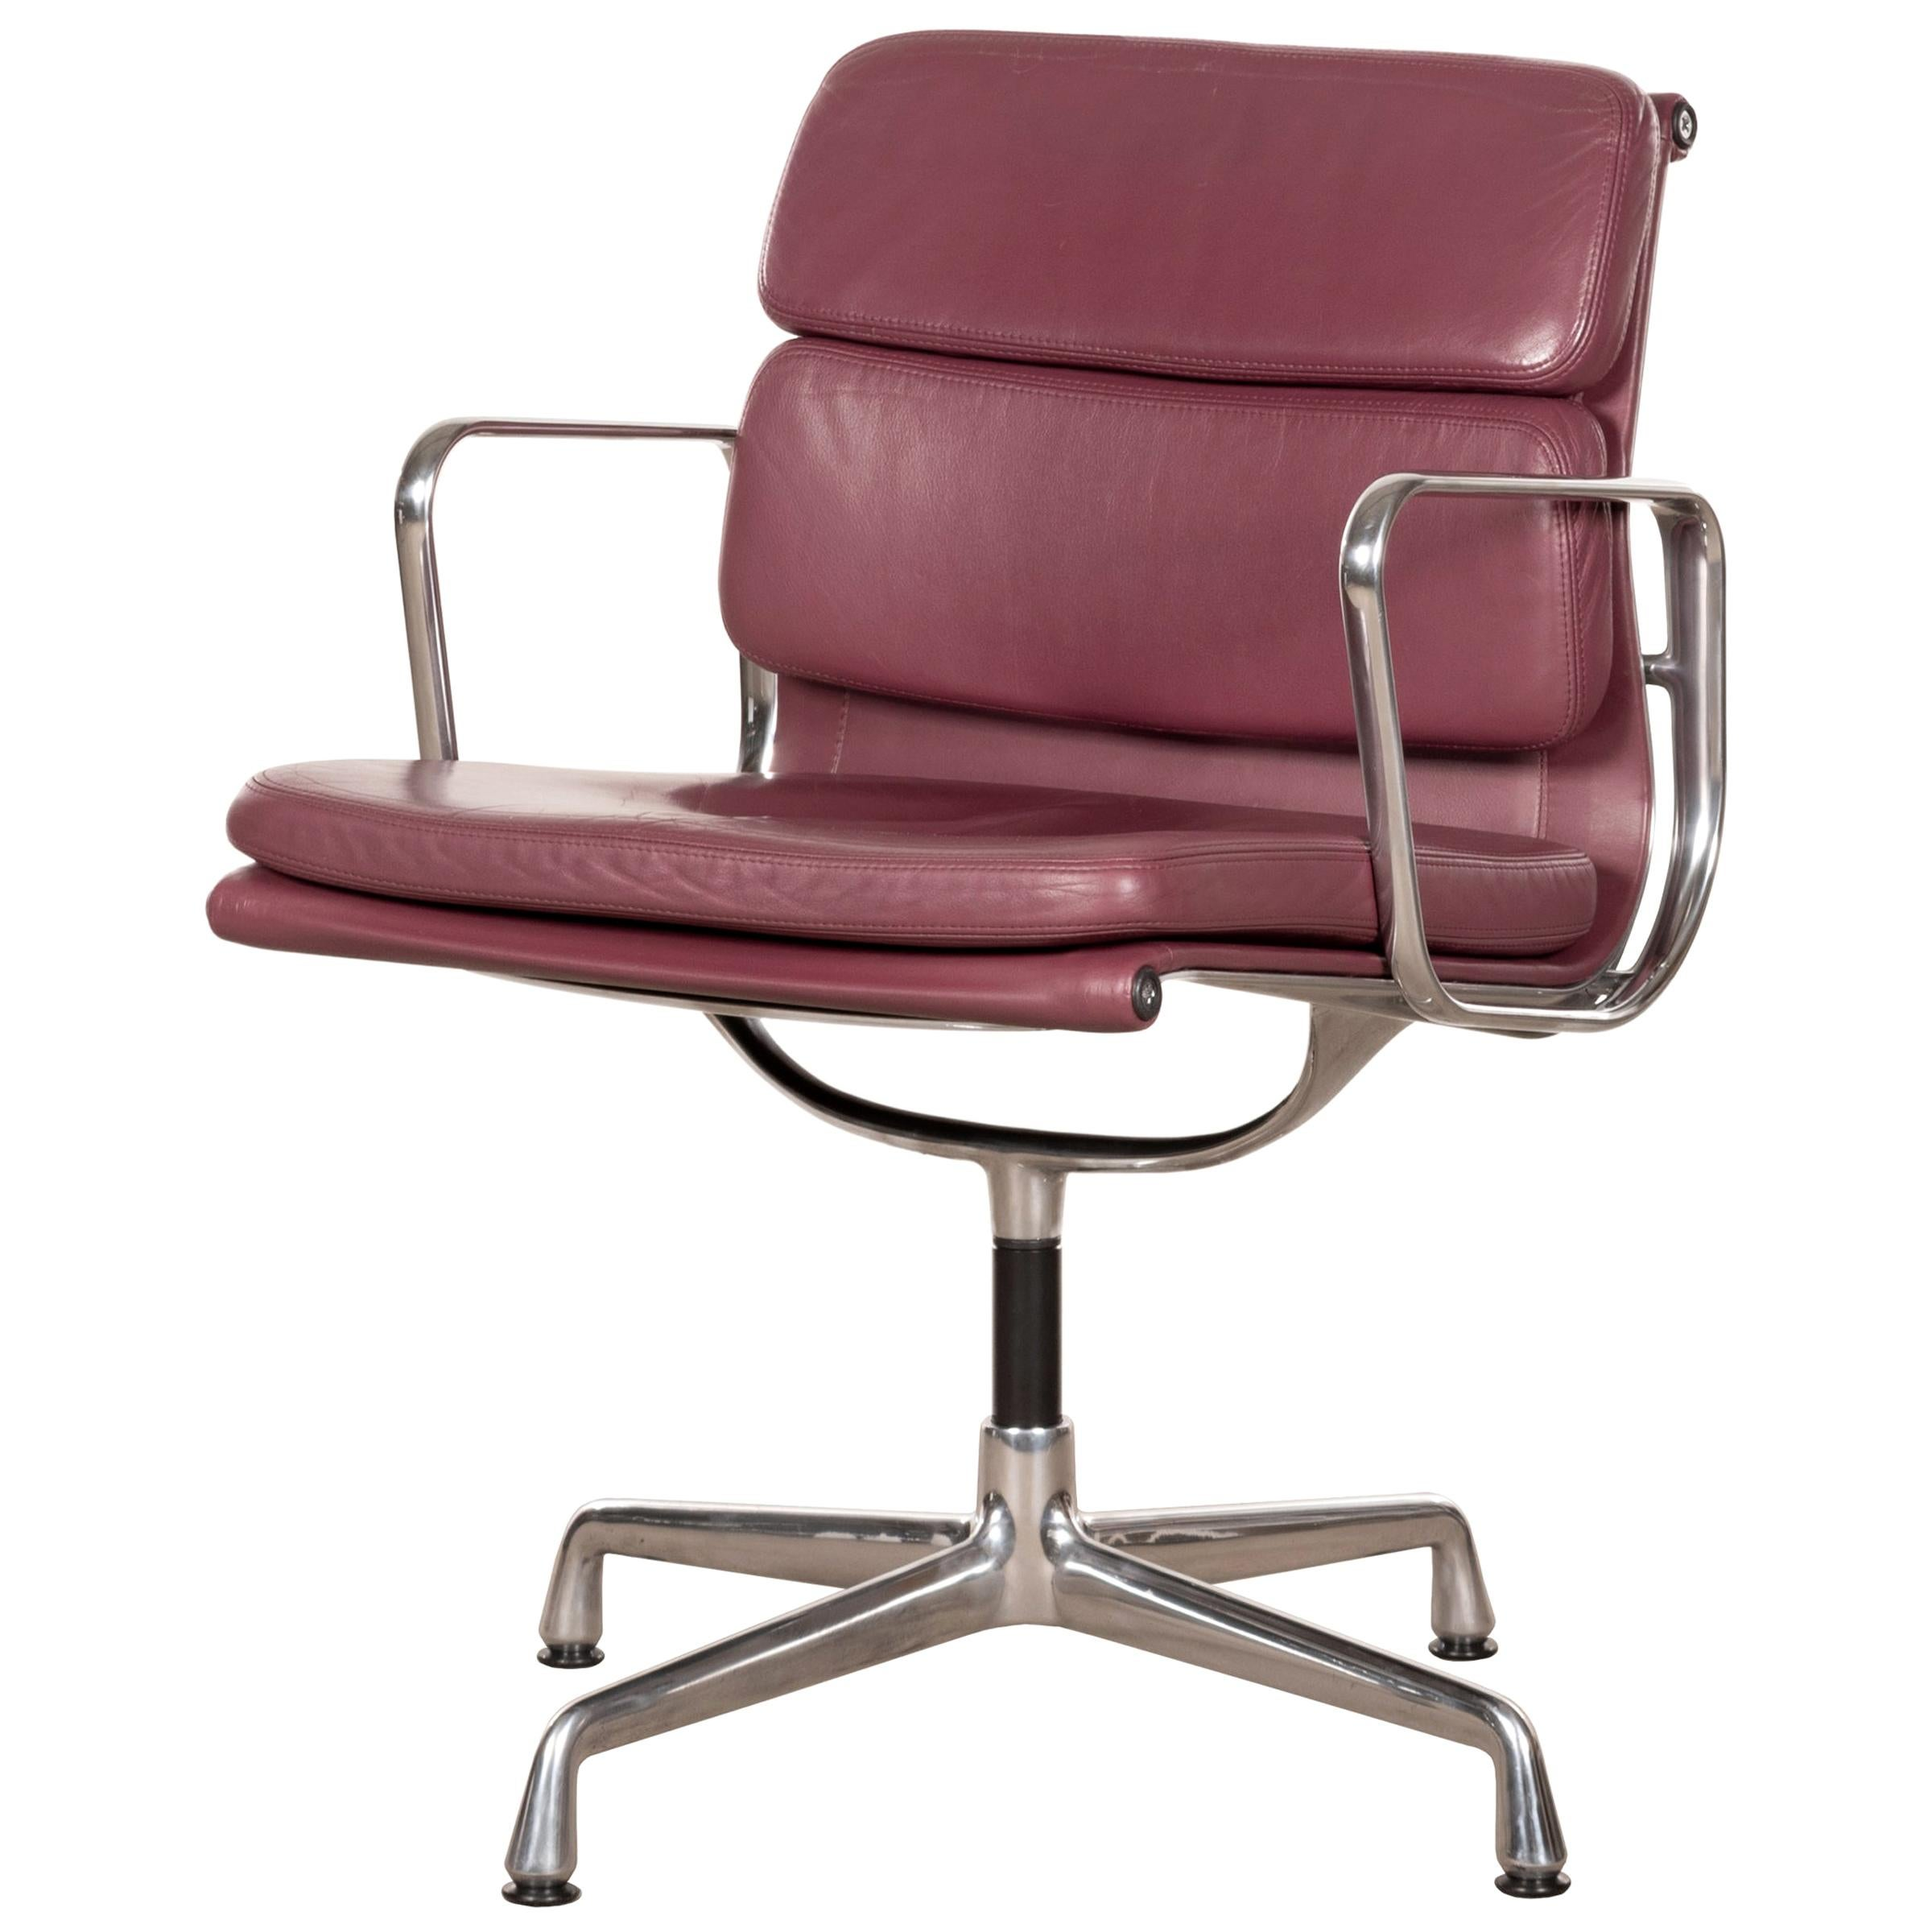 Charles & Ray Eames EA208 Soft Pad Chair in Aubergine / Purple leather by Vitra